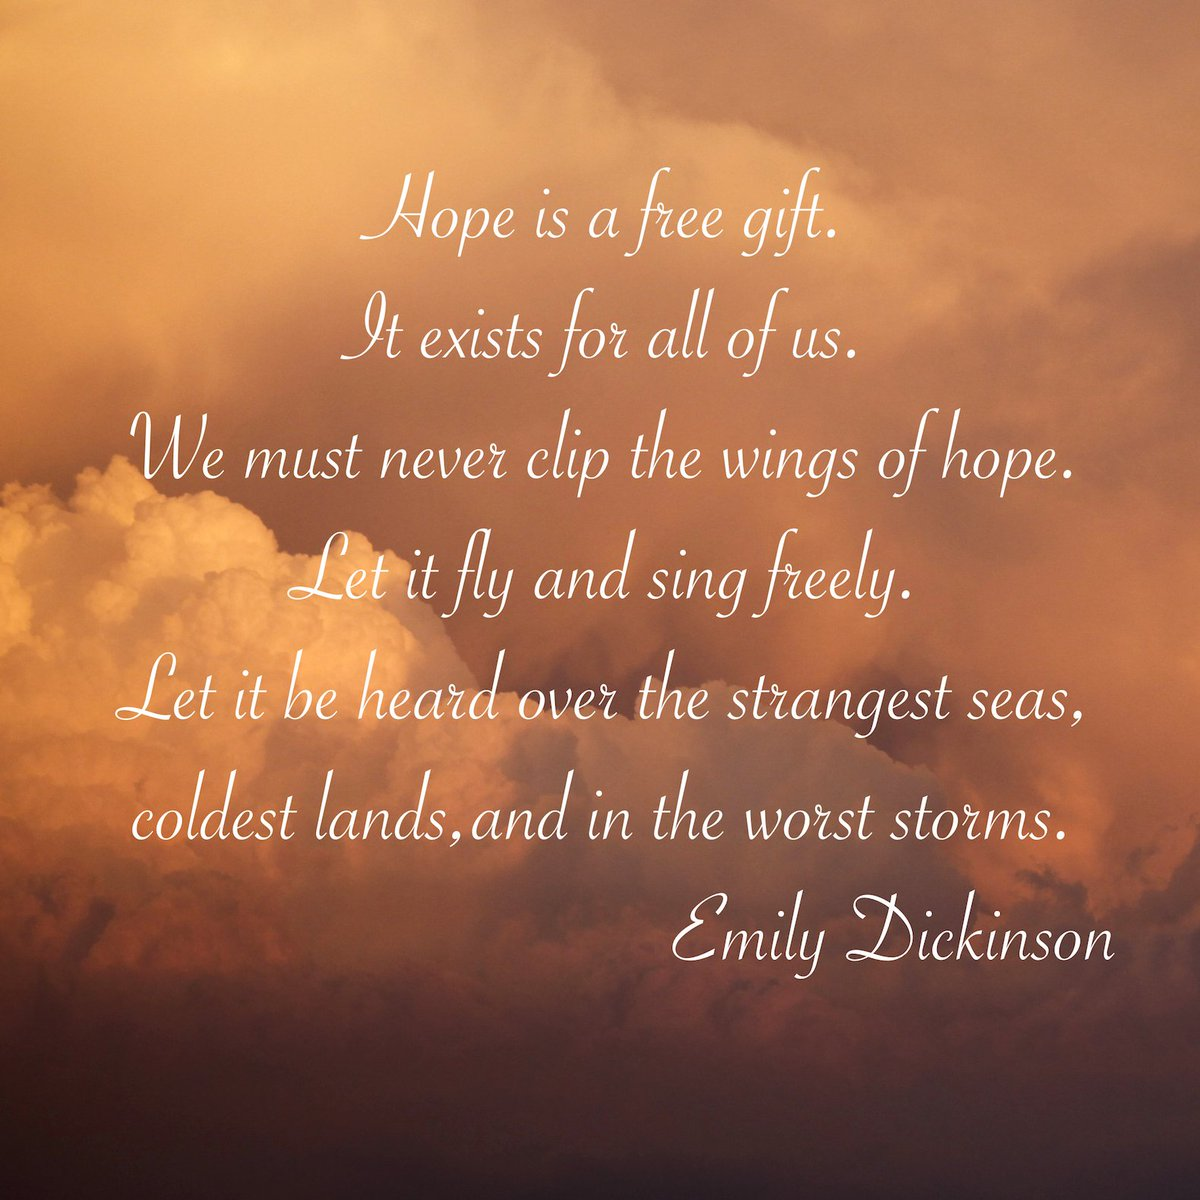 🌎🙏💙 Hope is a free gift.  It exists for all of us. We must never clip the wings of hope. Let it fly and sing freely. Let it be heard over the strangest seas,  coldest lands,and in the worst storms.             Emily Dickinson  #WorldPoetryDay #JOYpublicity #WednesdayMotivation